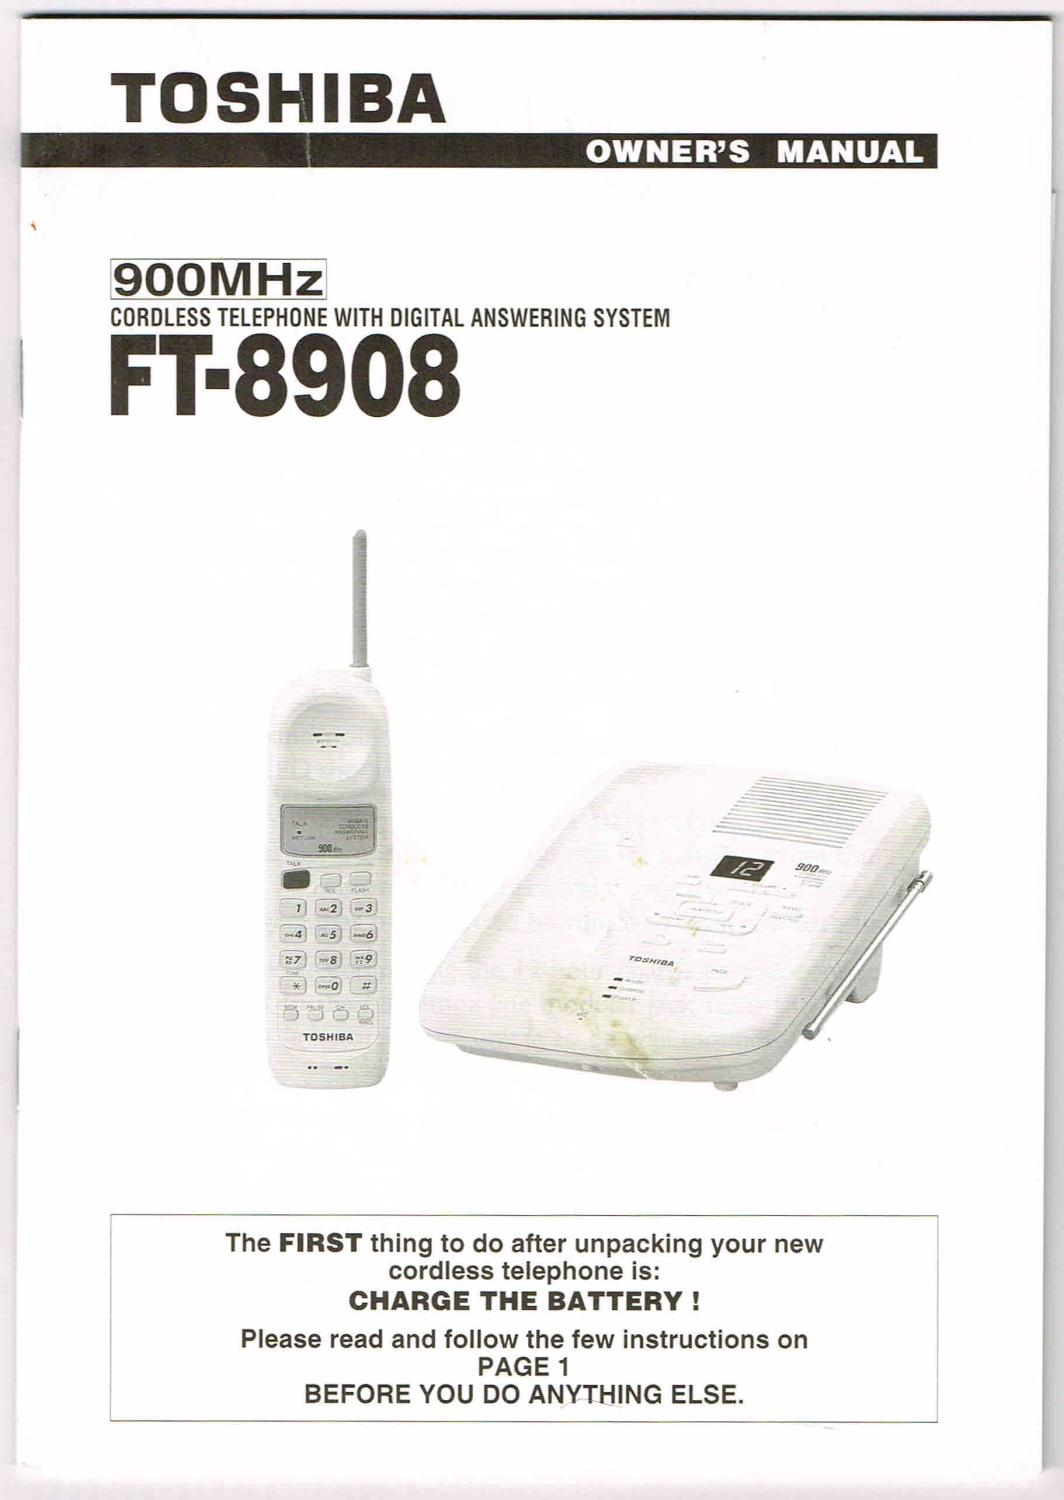 TOSHIBA OWNERS MANUAL 900MHz FT 8908 CORDLESS TELEPHONE WITH DIGITAL ANSWERING SYSTEM